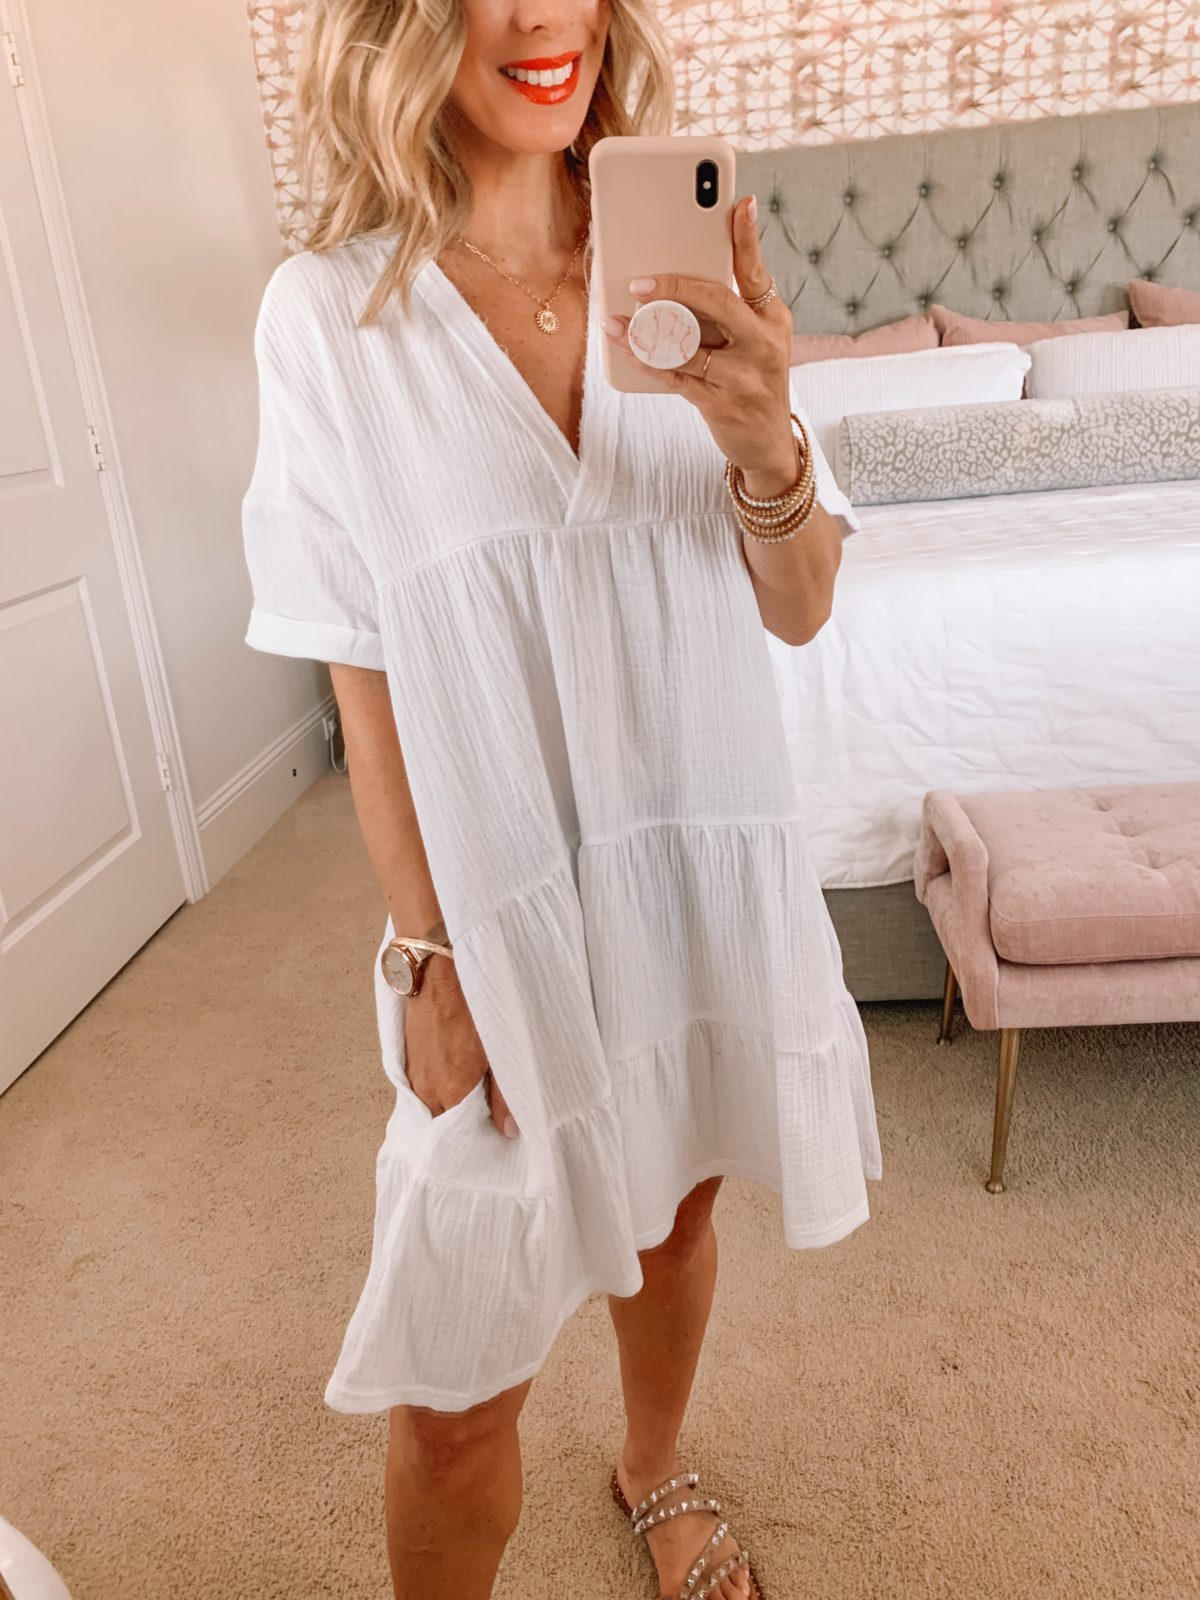 Amazon Fashion Faves, White Gauzy Dress, Studded Sandals, and Weekend Tote